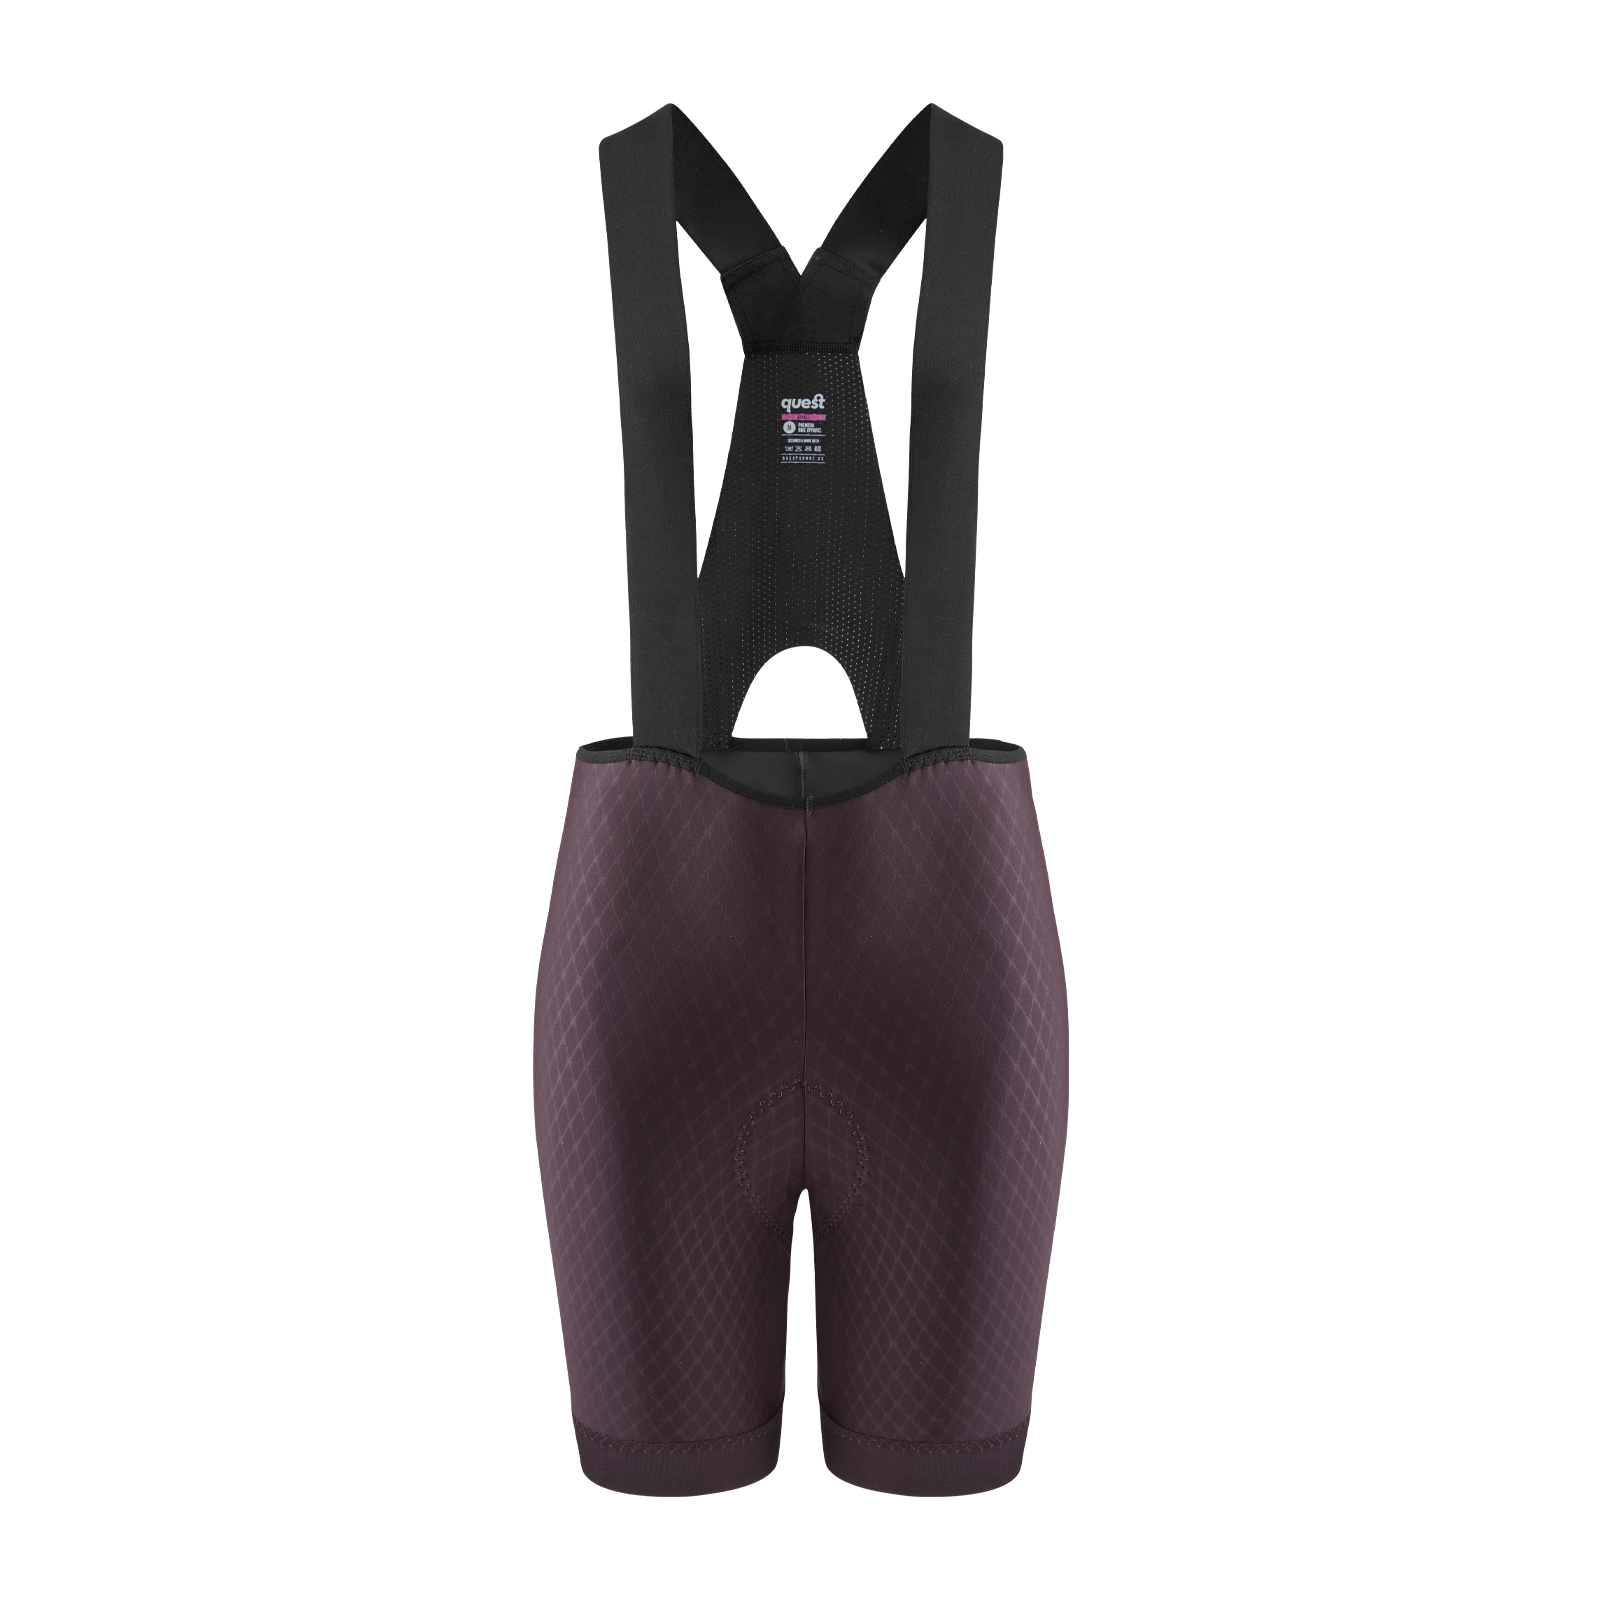 Women's Adventure Bib Shorts - questsport.shop